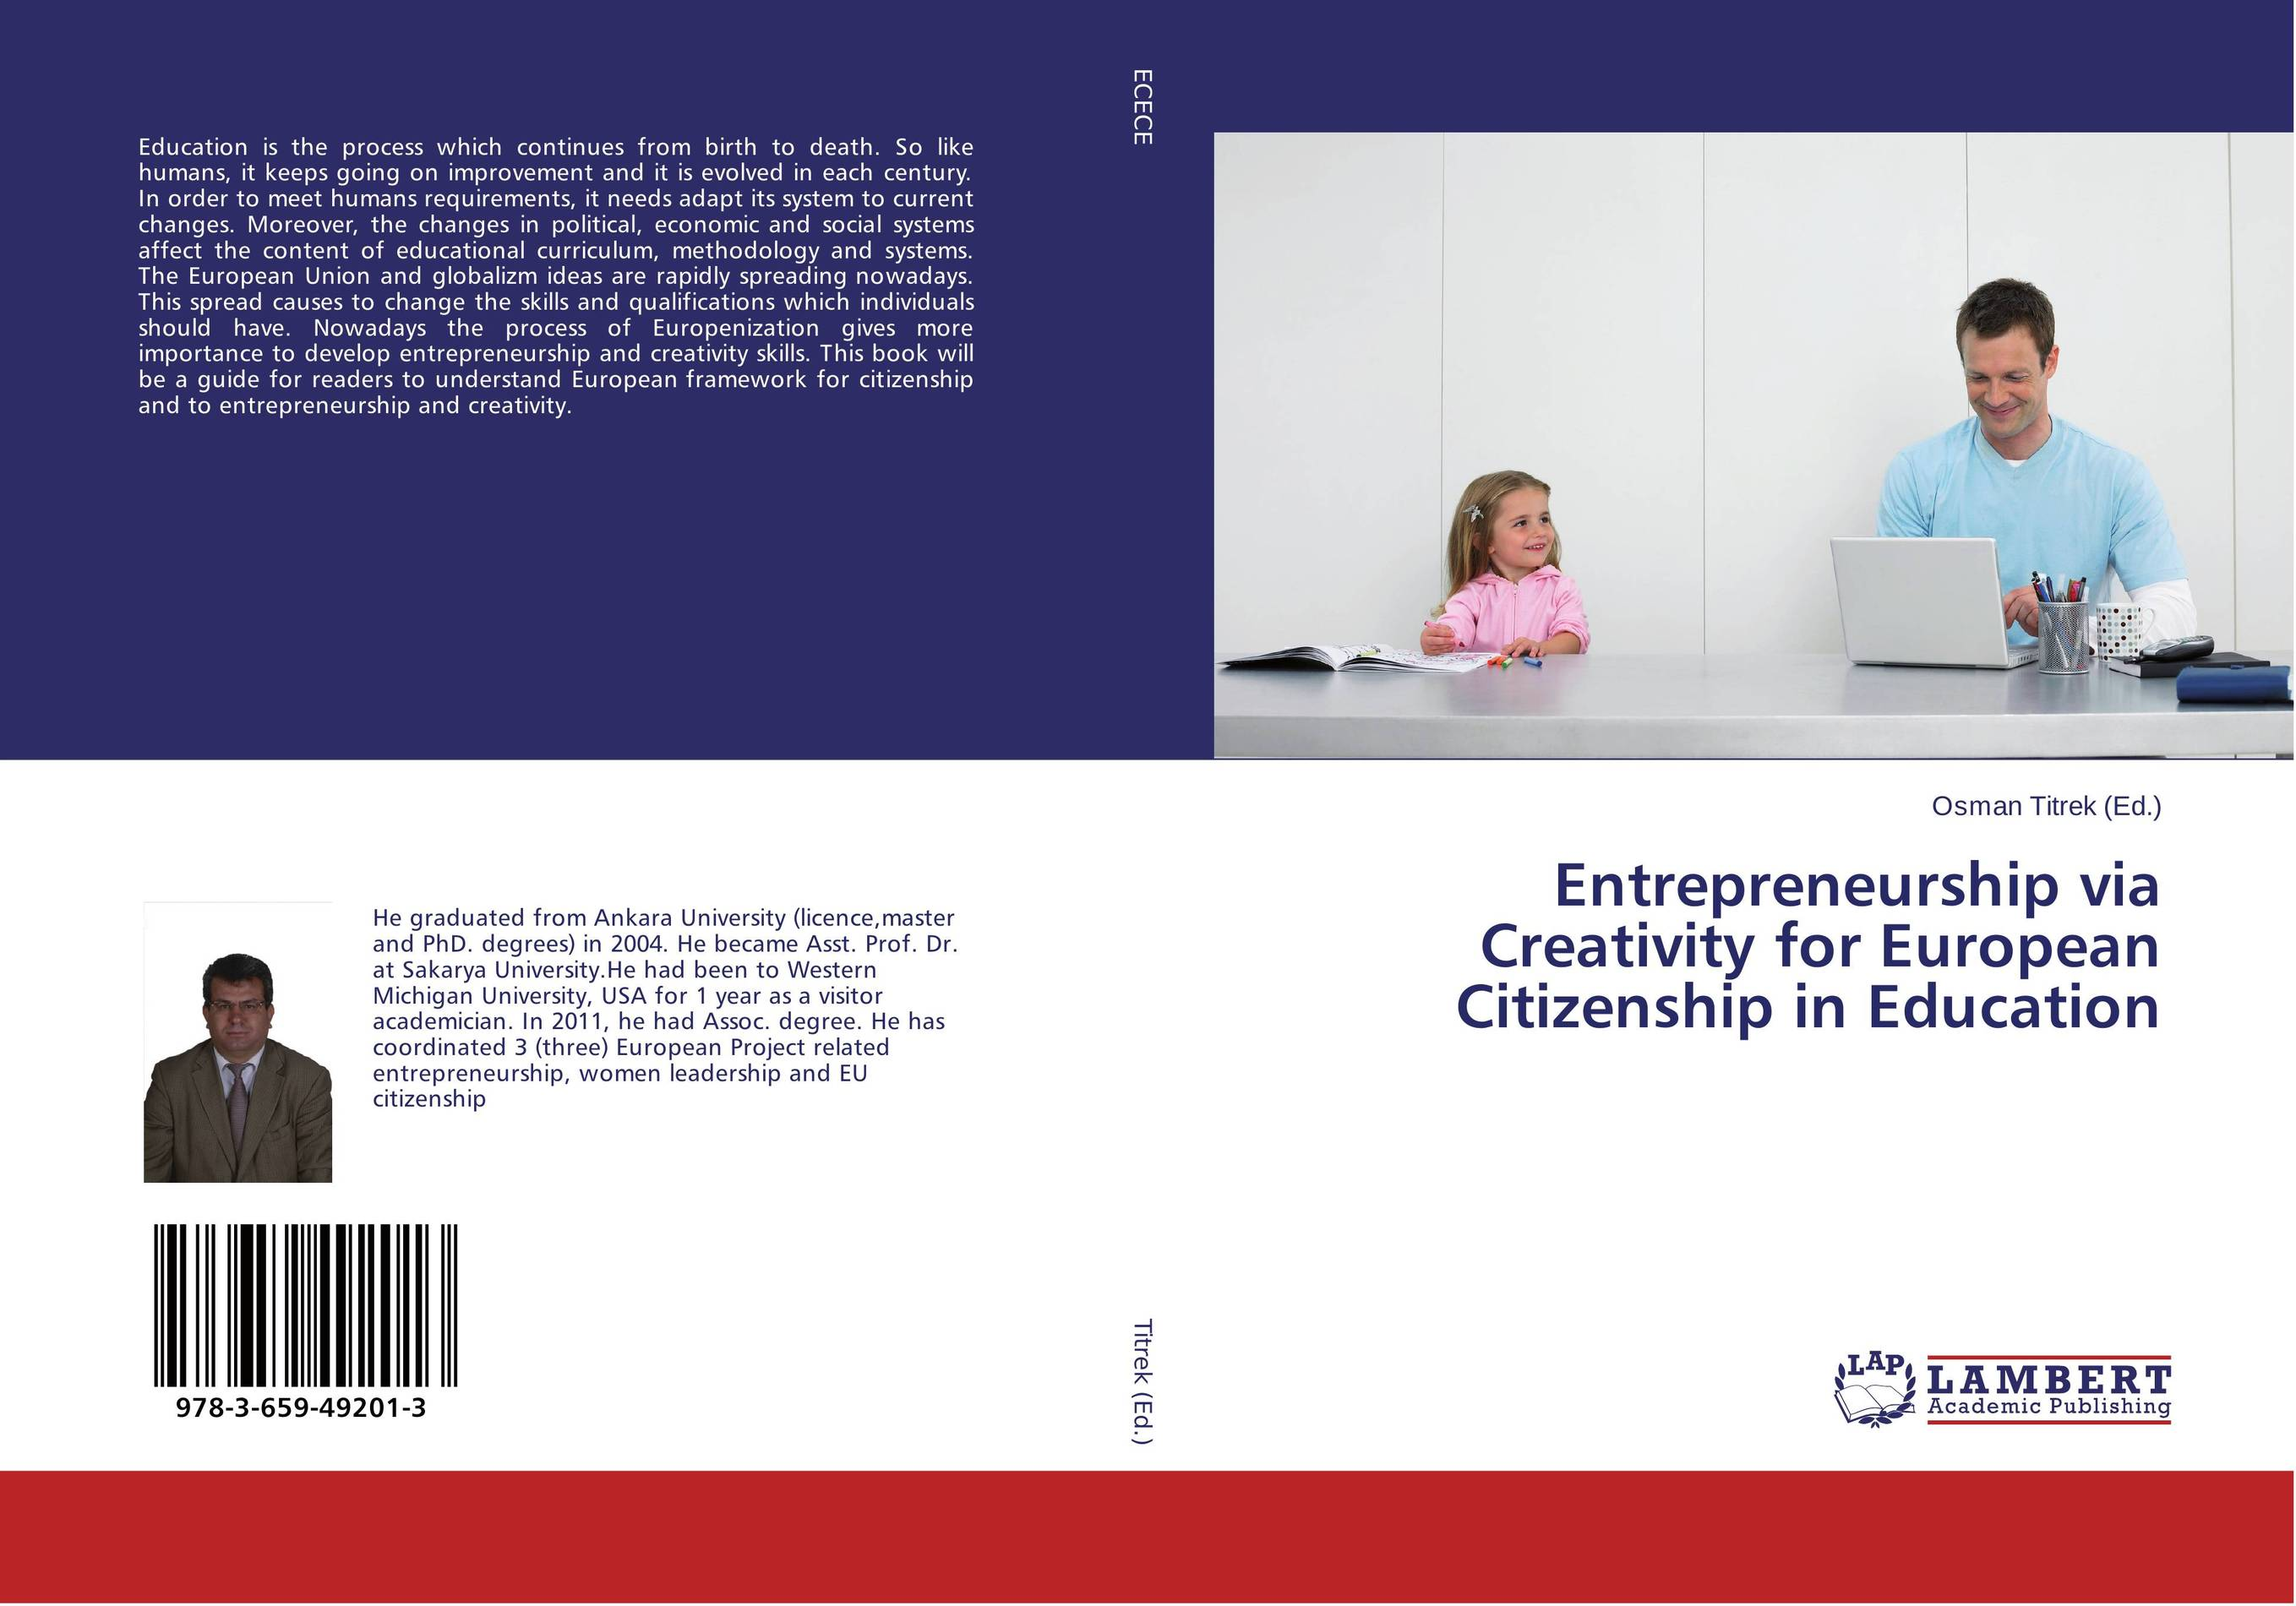 Entrepreneurship via Creativity for European Citizenship in Education 4 port poe switch 10 100m power over ethernet poe